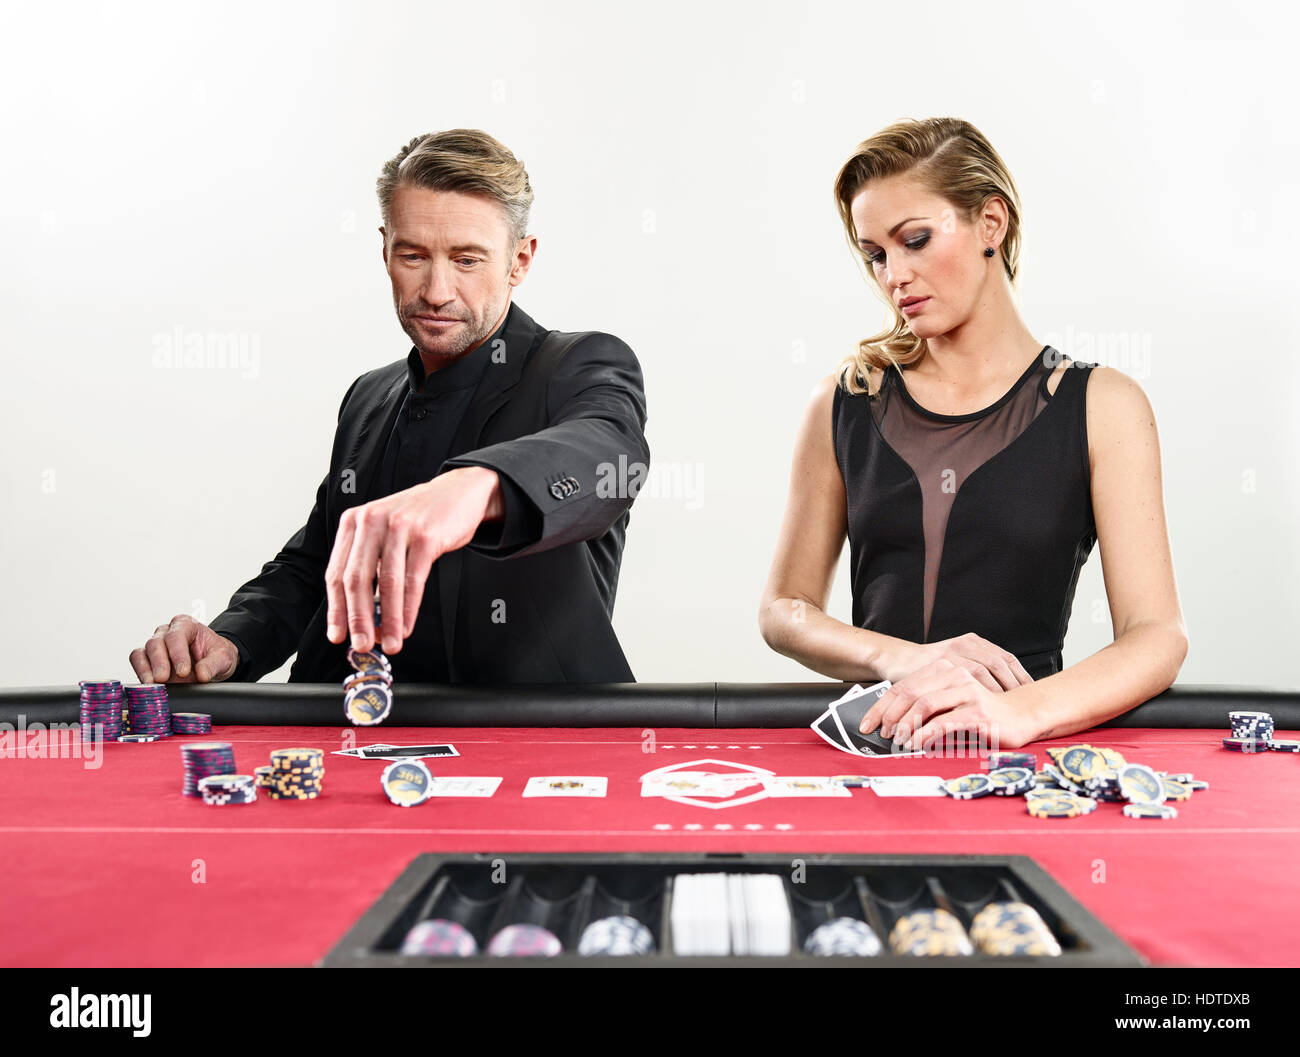 Couple playing blackjack, playing cards, chips, casino - Stock Image